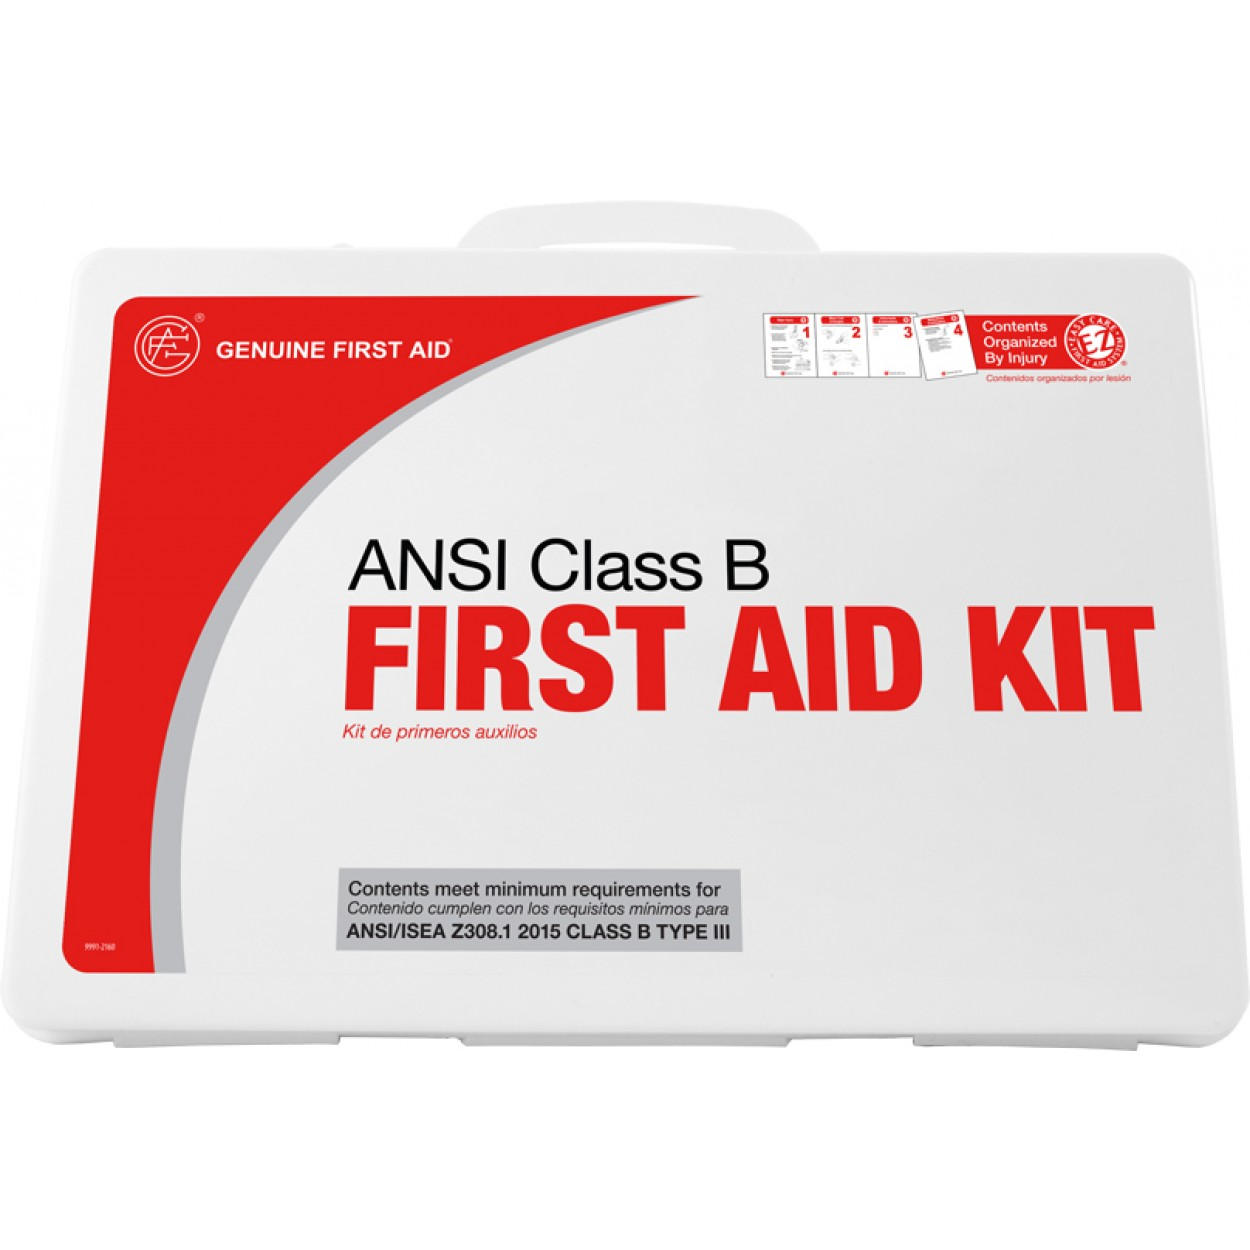 Class B ANSI 50 Person Plastic First Aid Kit - Genuine First